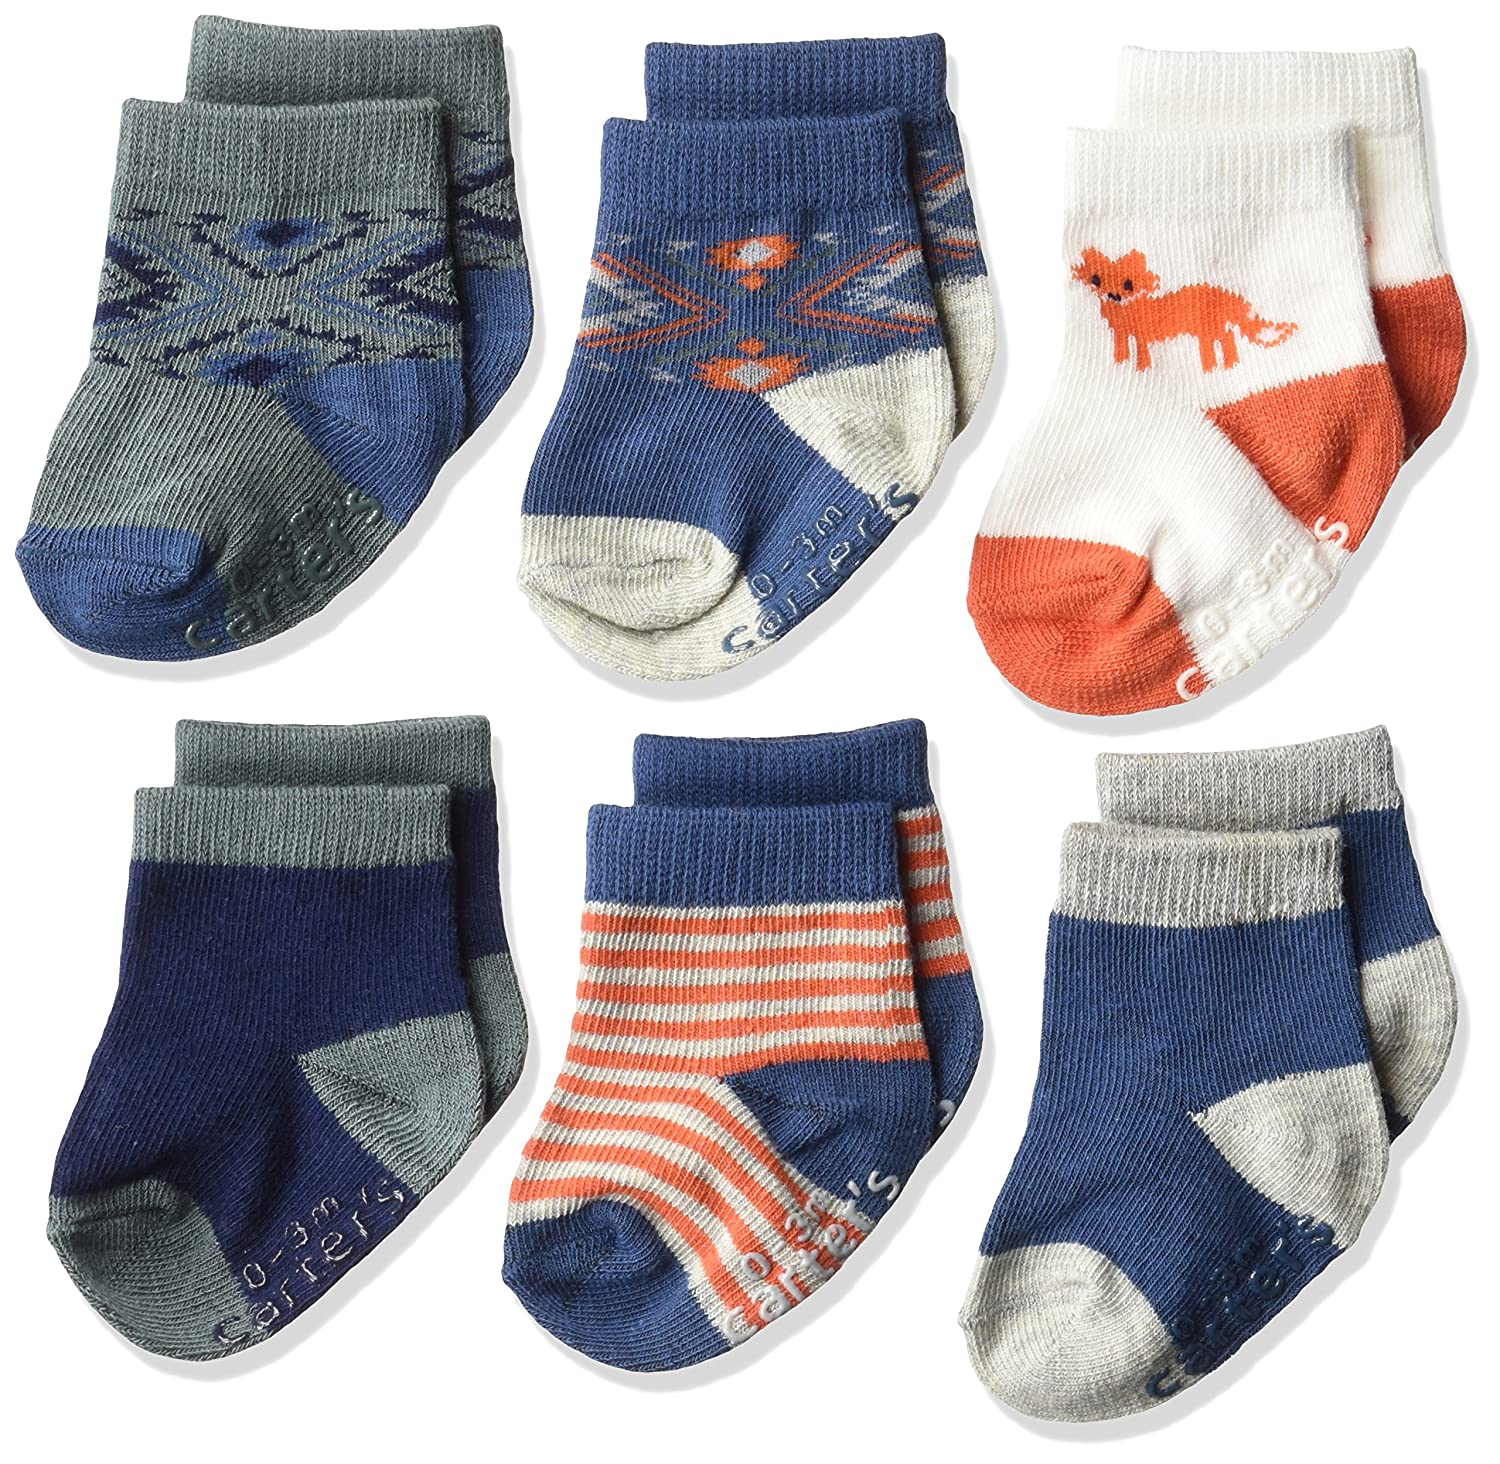 Carters Baby Boys 6 Pack Computer Socks Stripes